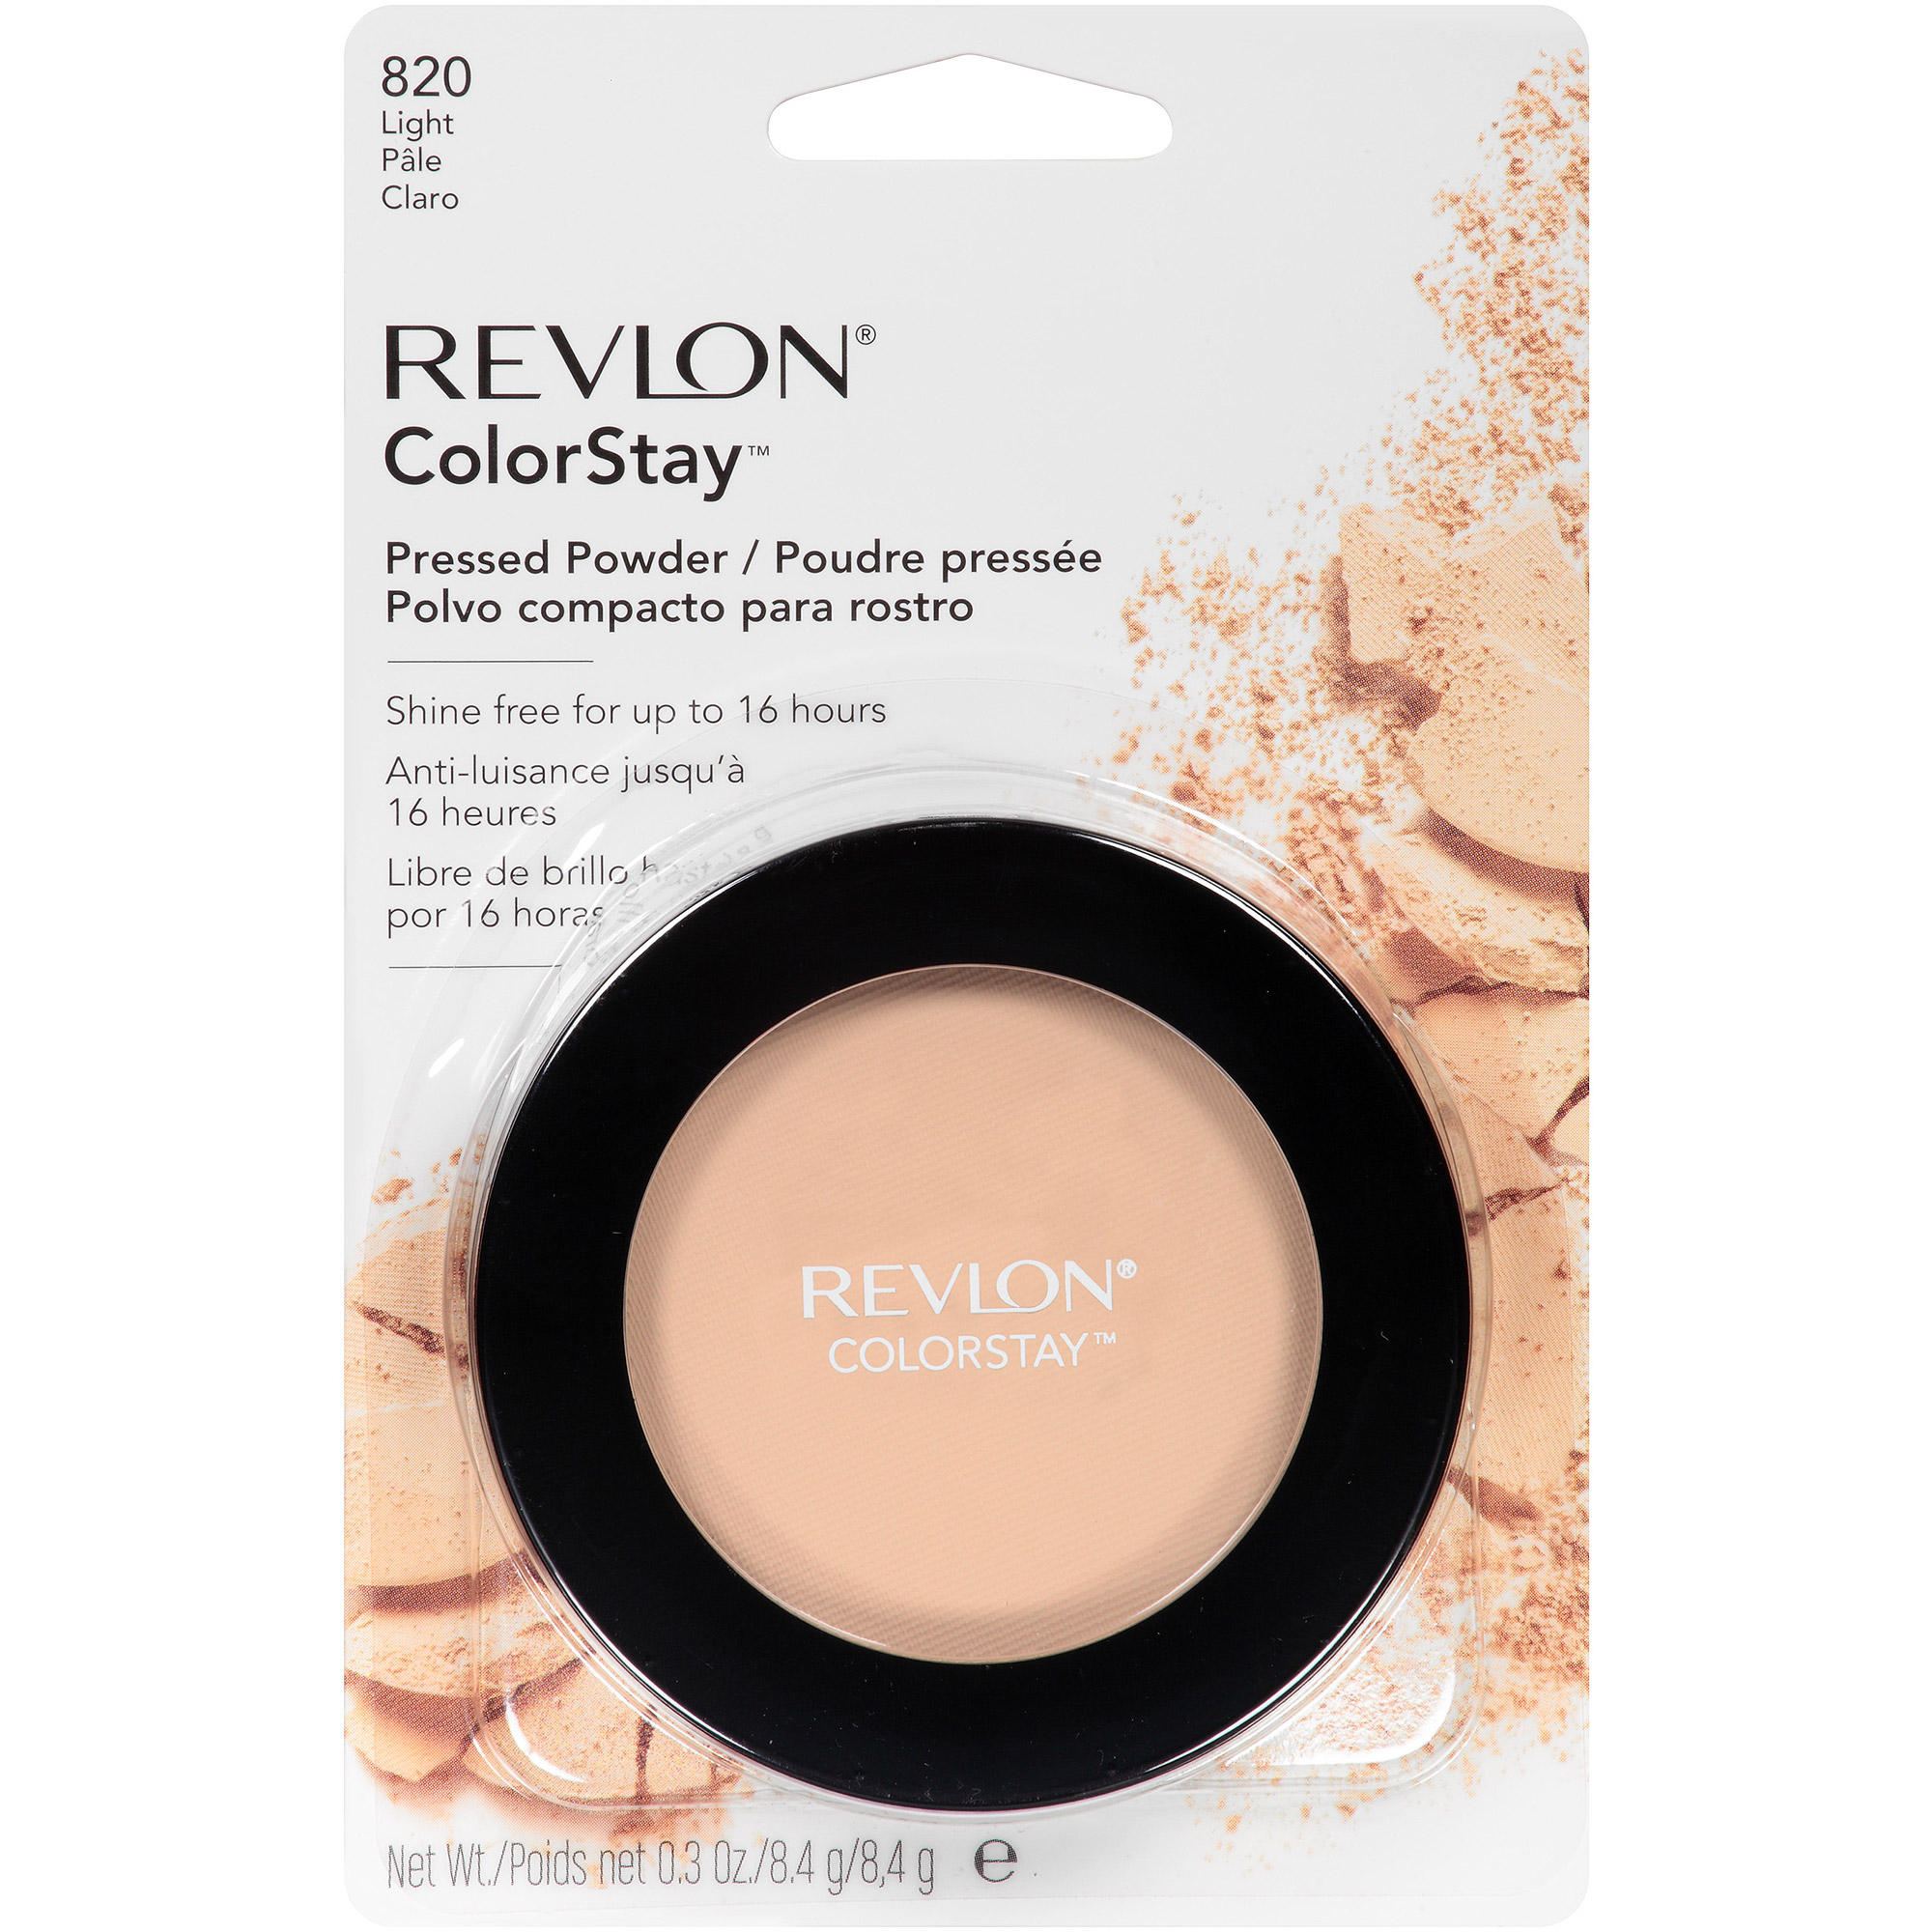 Revlon ColorStay Pressed Powder, 820 Light, 0.3 oz